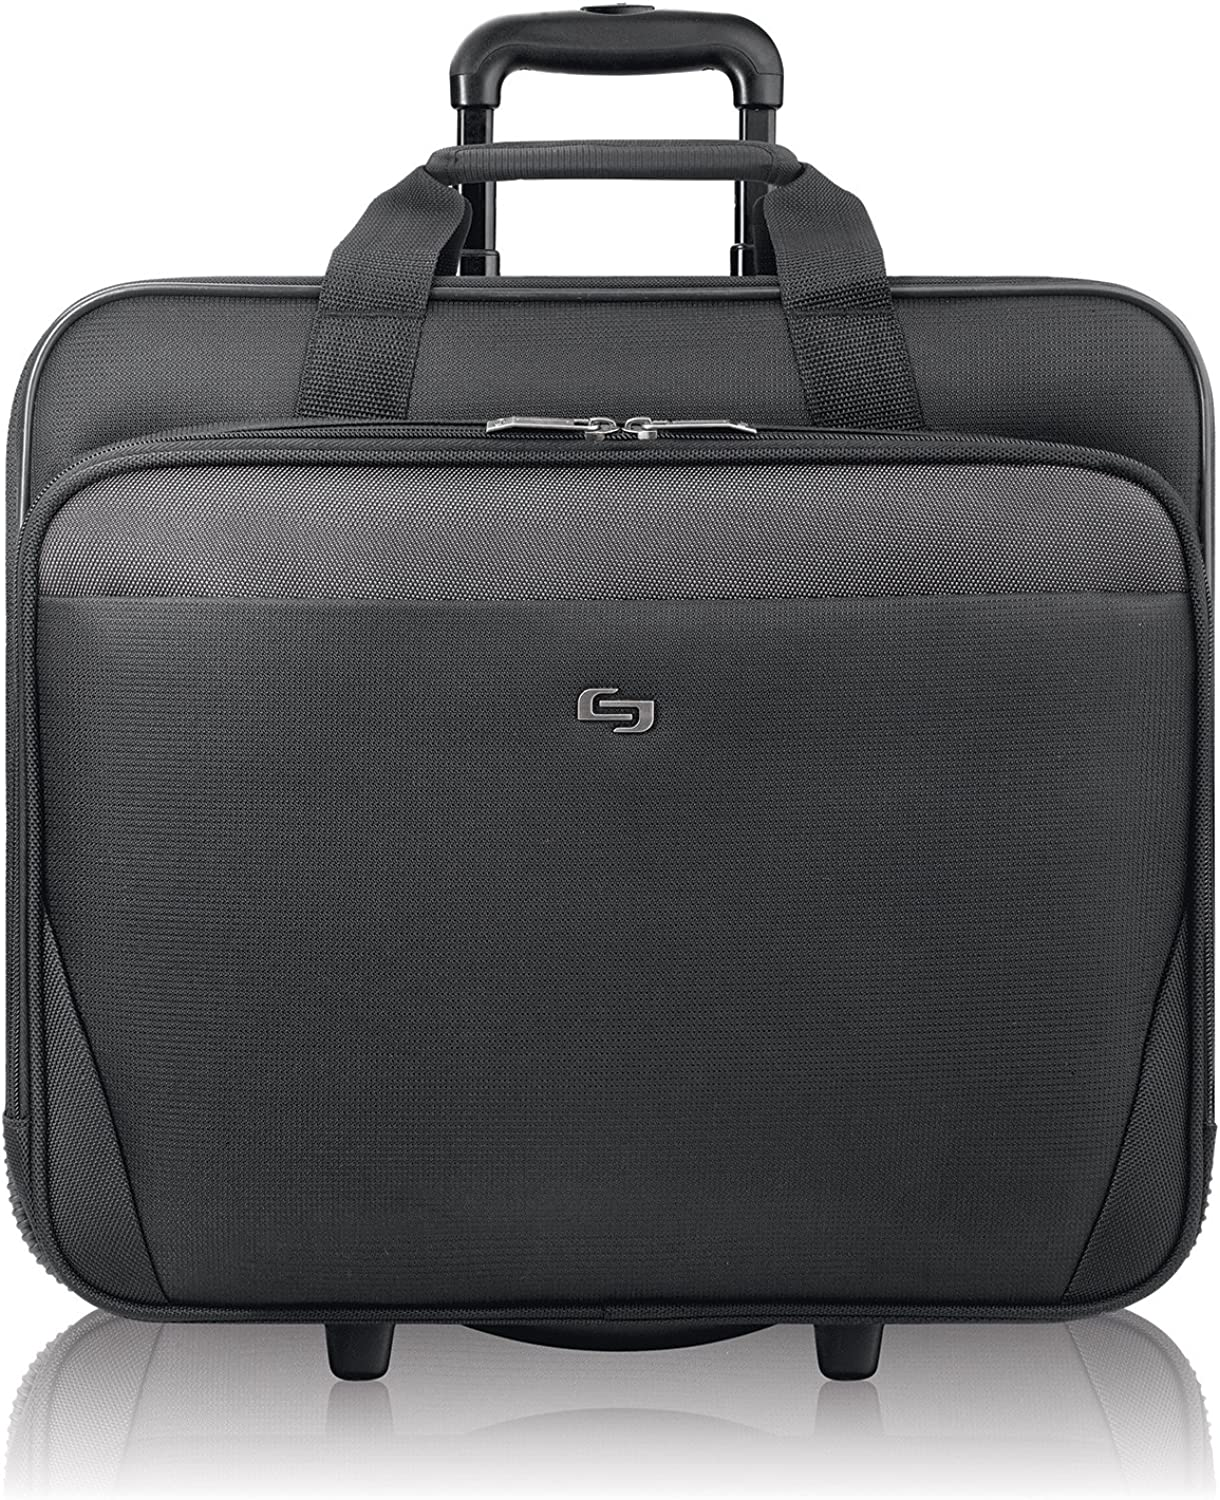 Solo Empire 17.3 Inch Rolling Laptop Case